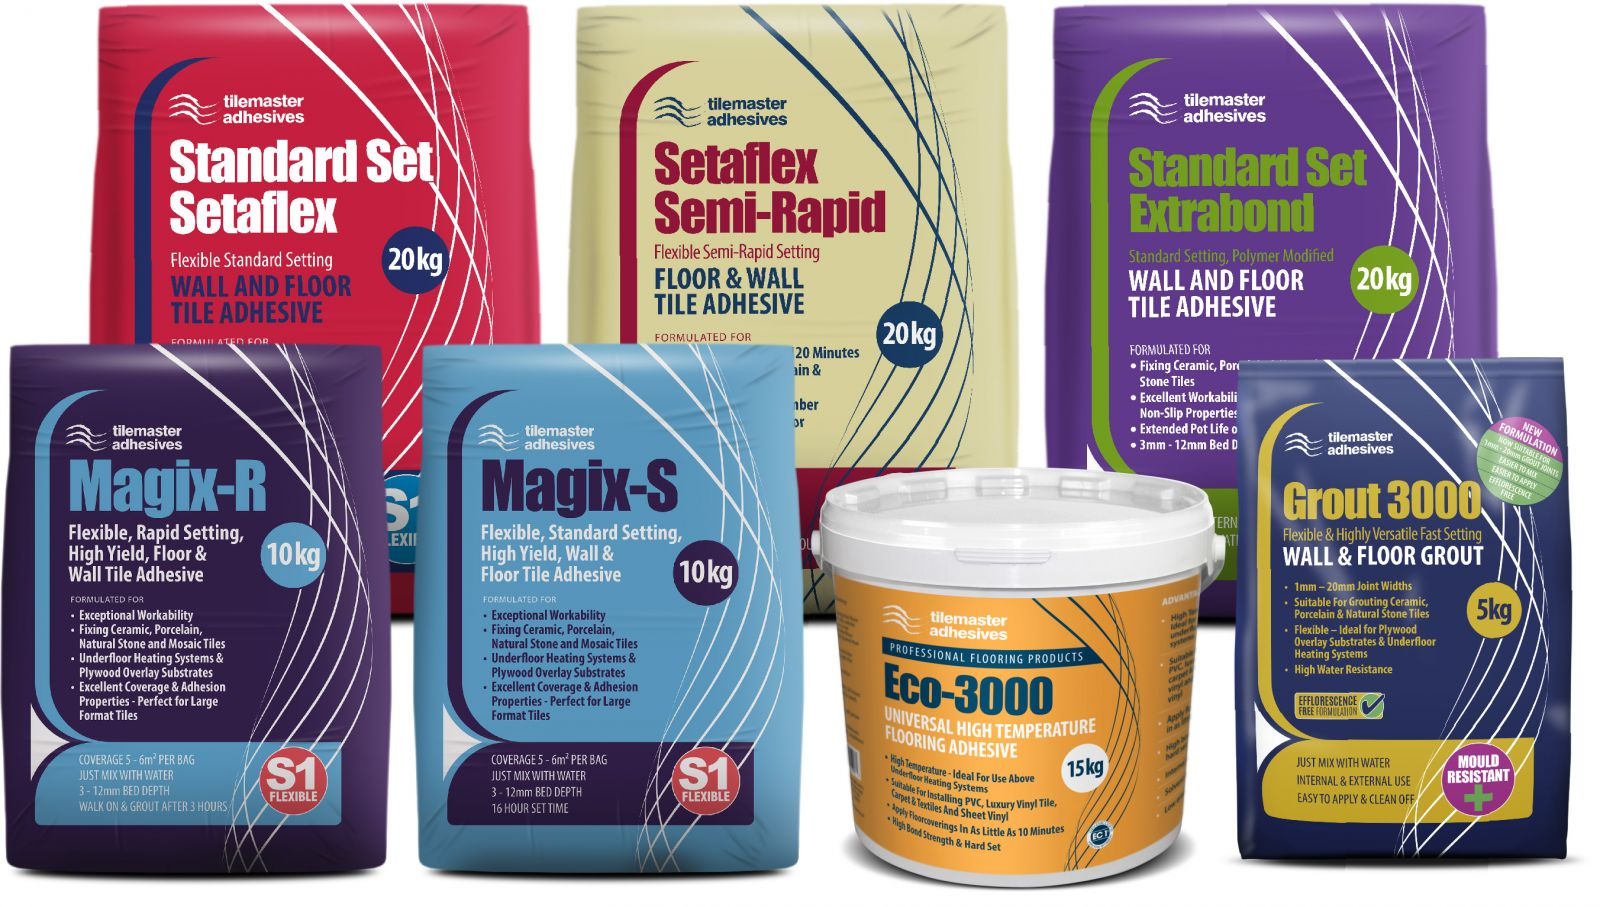 A full range of adhesives for tiles and resilient flooring from Tilemaster